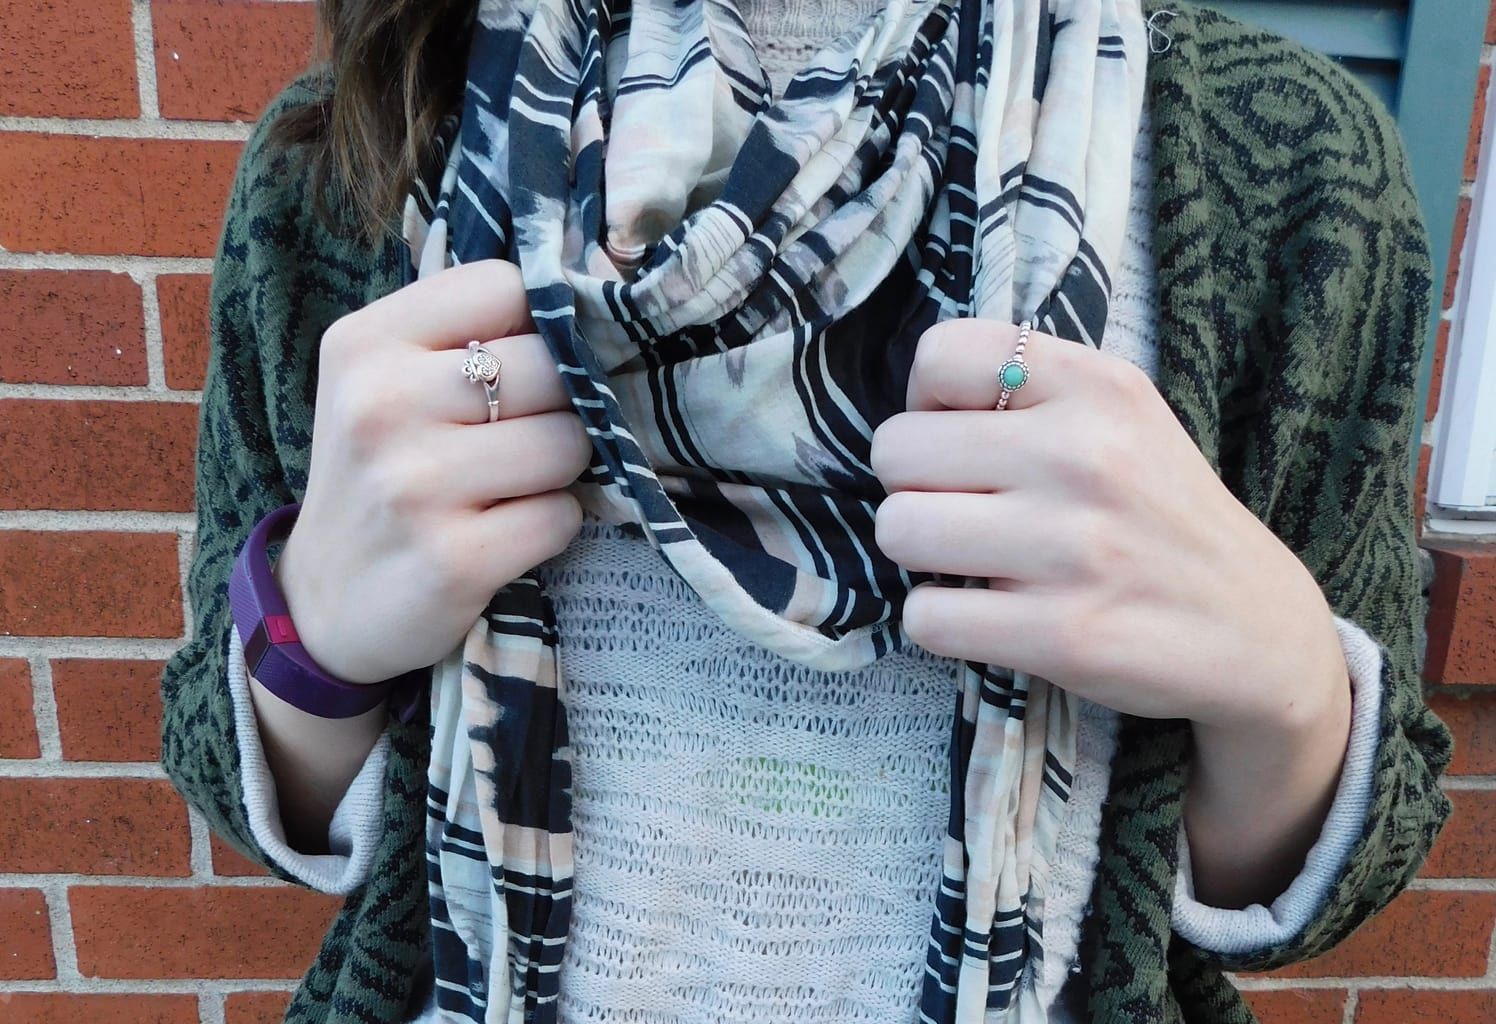 Lauren wears tiny, delicate silver rings, one with a turquoise stone, to compliment her casual look.